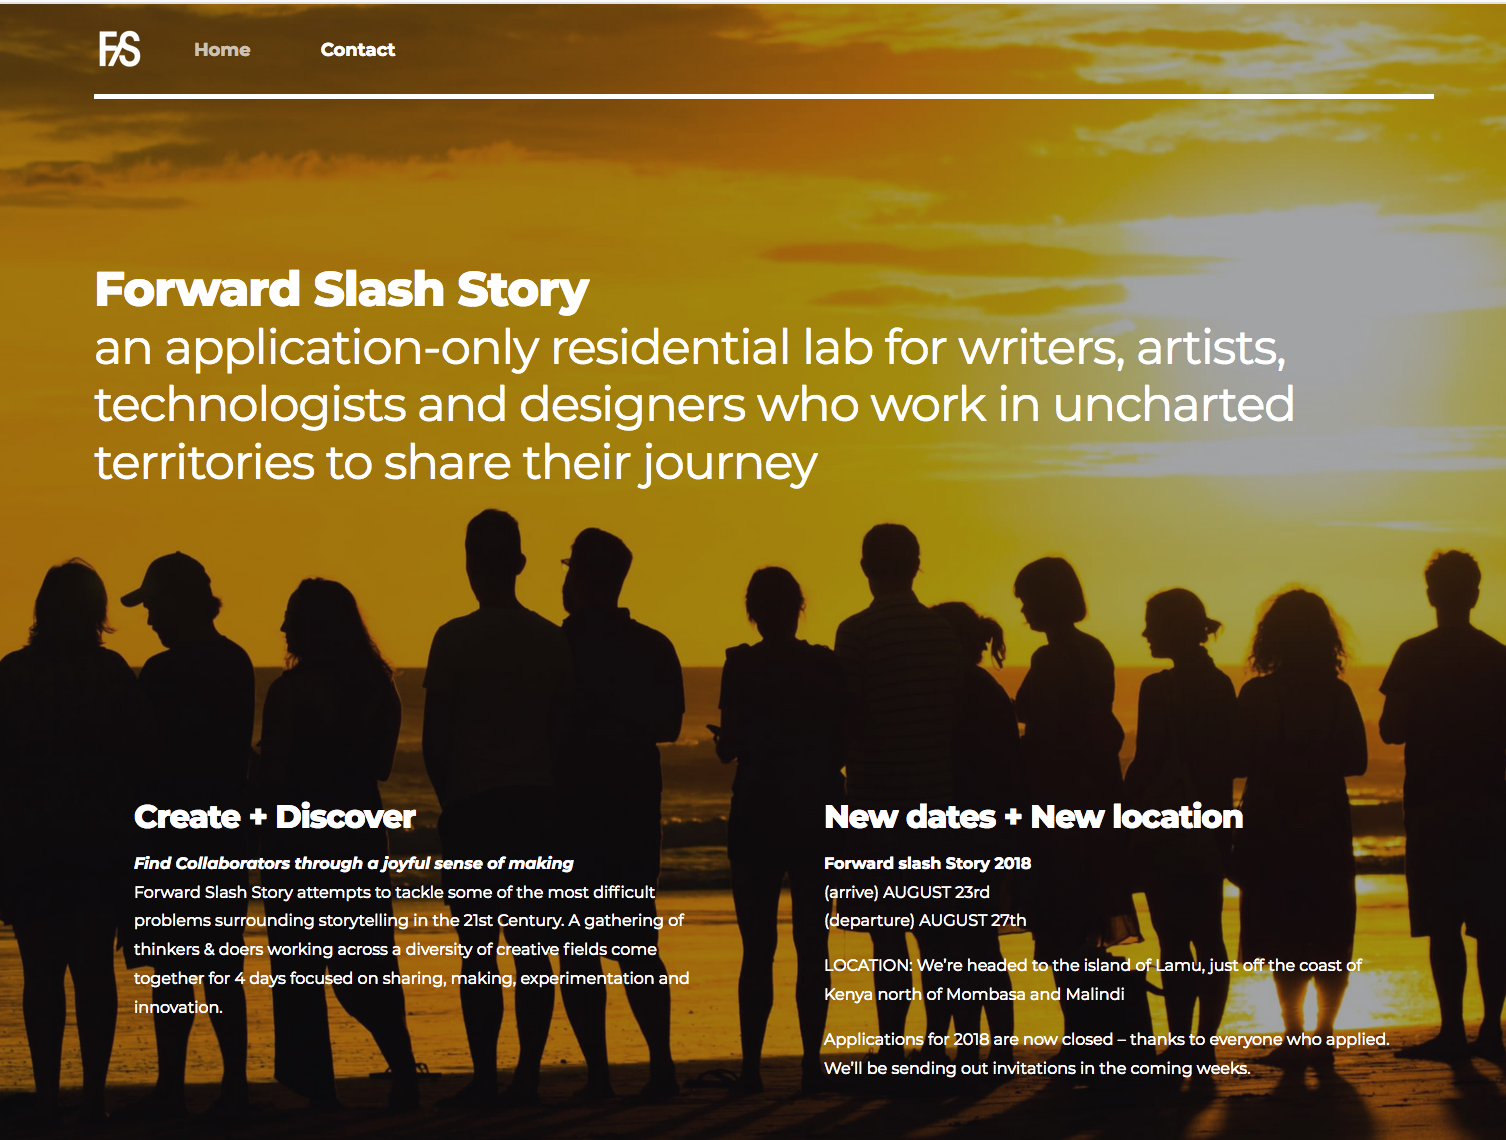 Forward Slash Story an application-only residential lab for writers, artists, technologists and designers who work in uncharted territories to share their journey